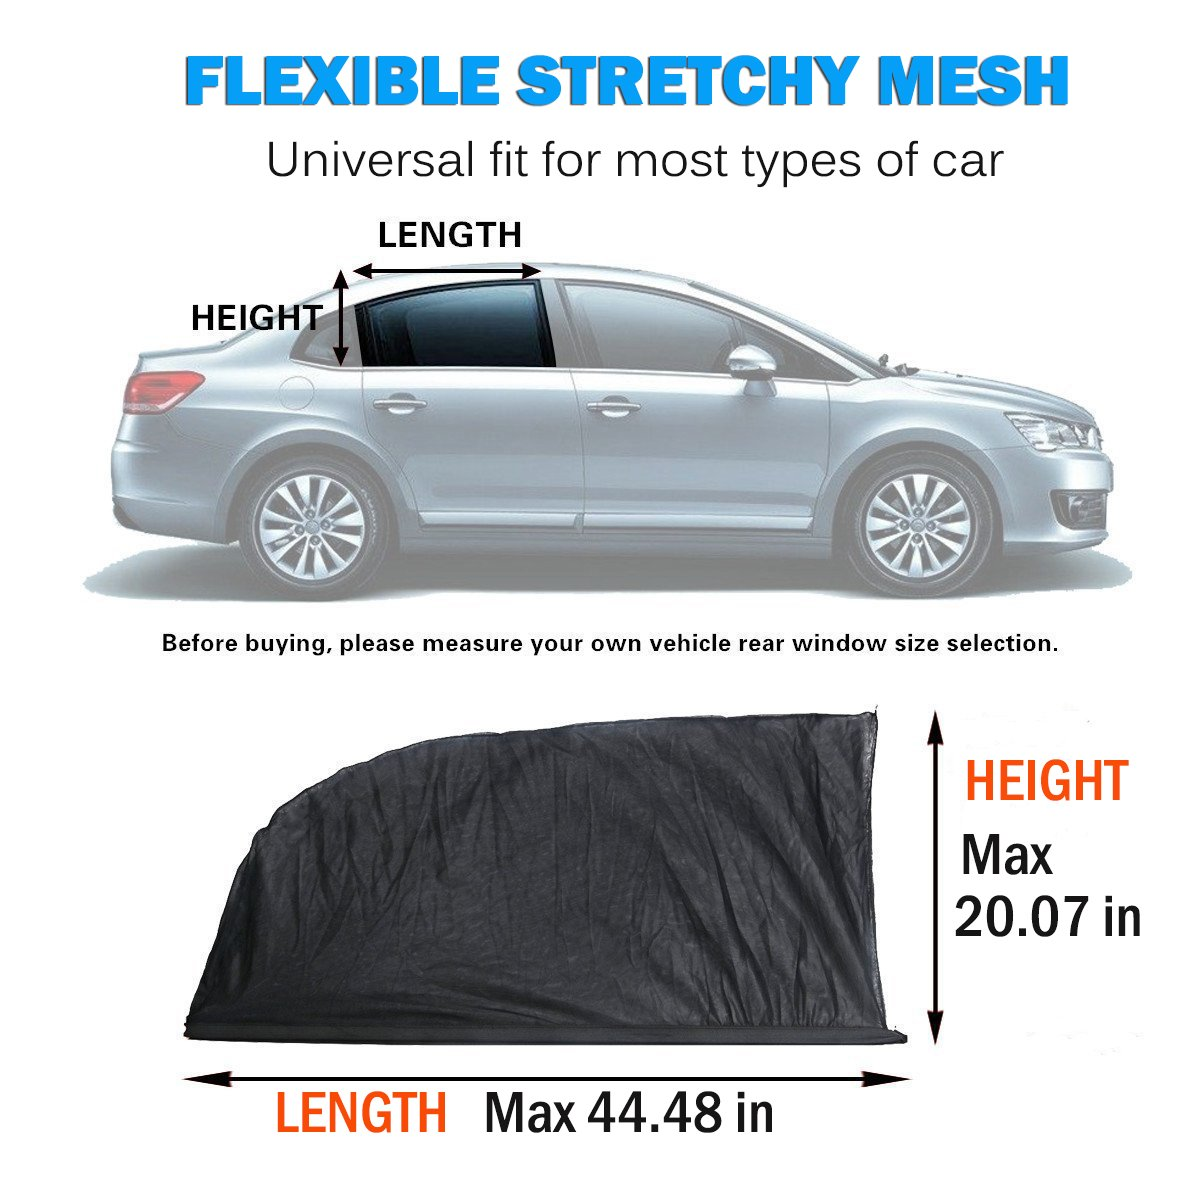 2 Pack 99/% Uv Ray Protection Car Rear Window Sun Shade Suvs Car Window Shade for Baby Universal Car Curtains Fit for Cars Protect Kids Pet from The Sun Trucks Breathable Mesh Car Sun Shade